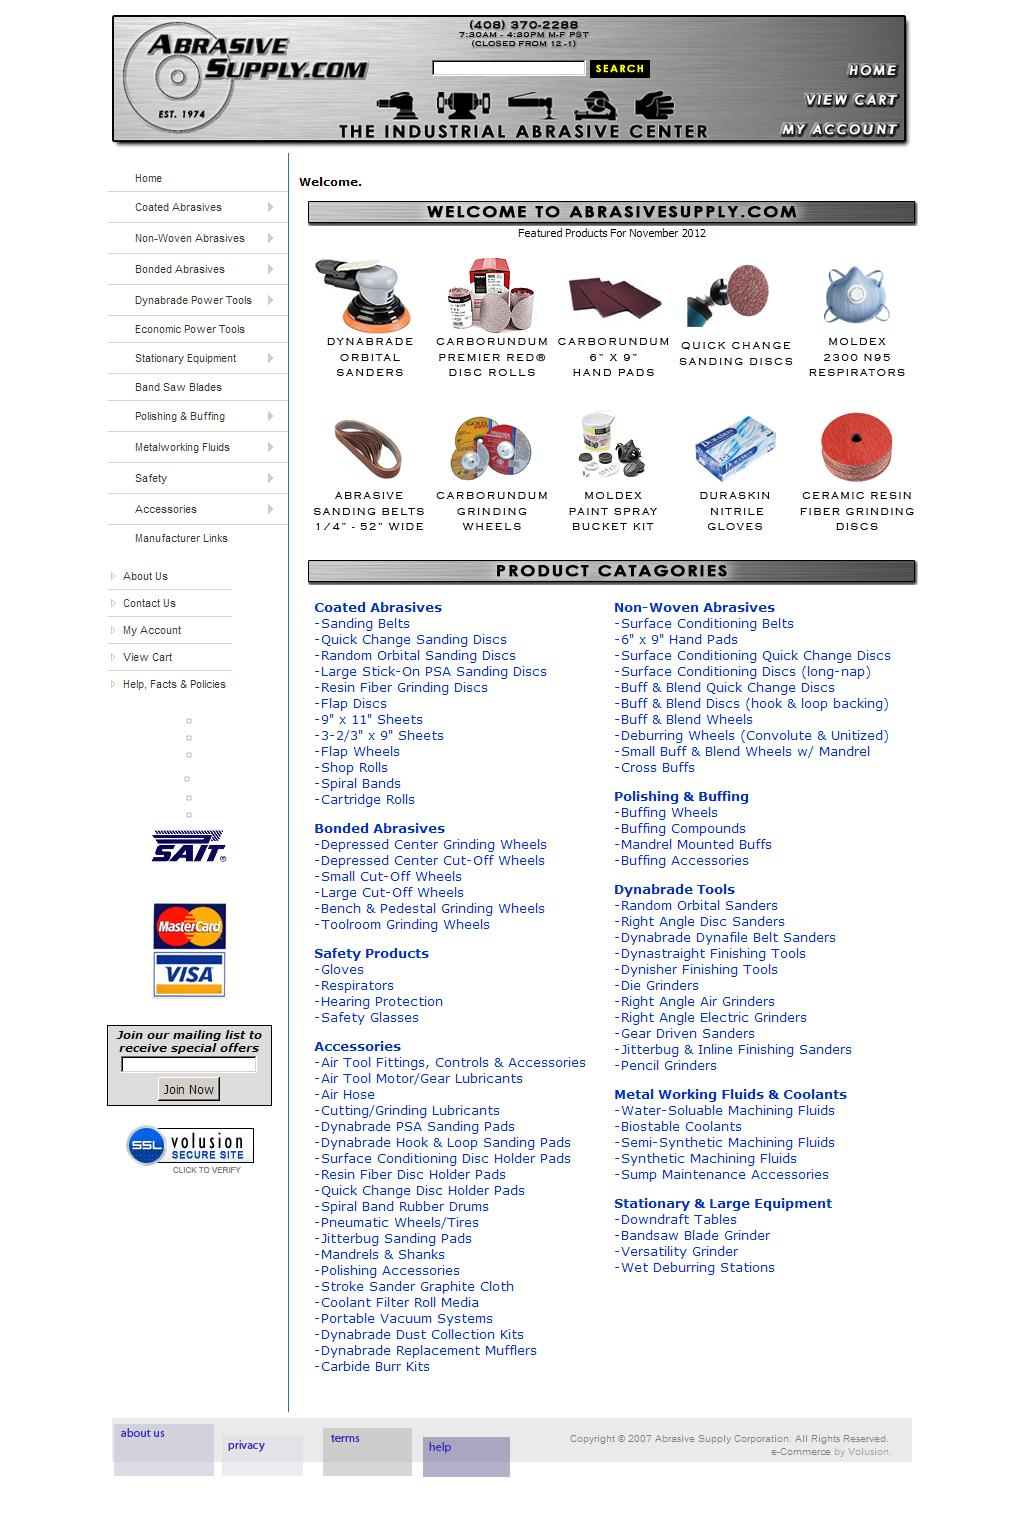 Abrasive Supply - Abrasive Sanding Discs, Sandpaper Belts, Abrasive Supplies for Sanding and Grinding, Dynabrade Air Tools & industrial Shop Supplies.